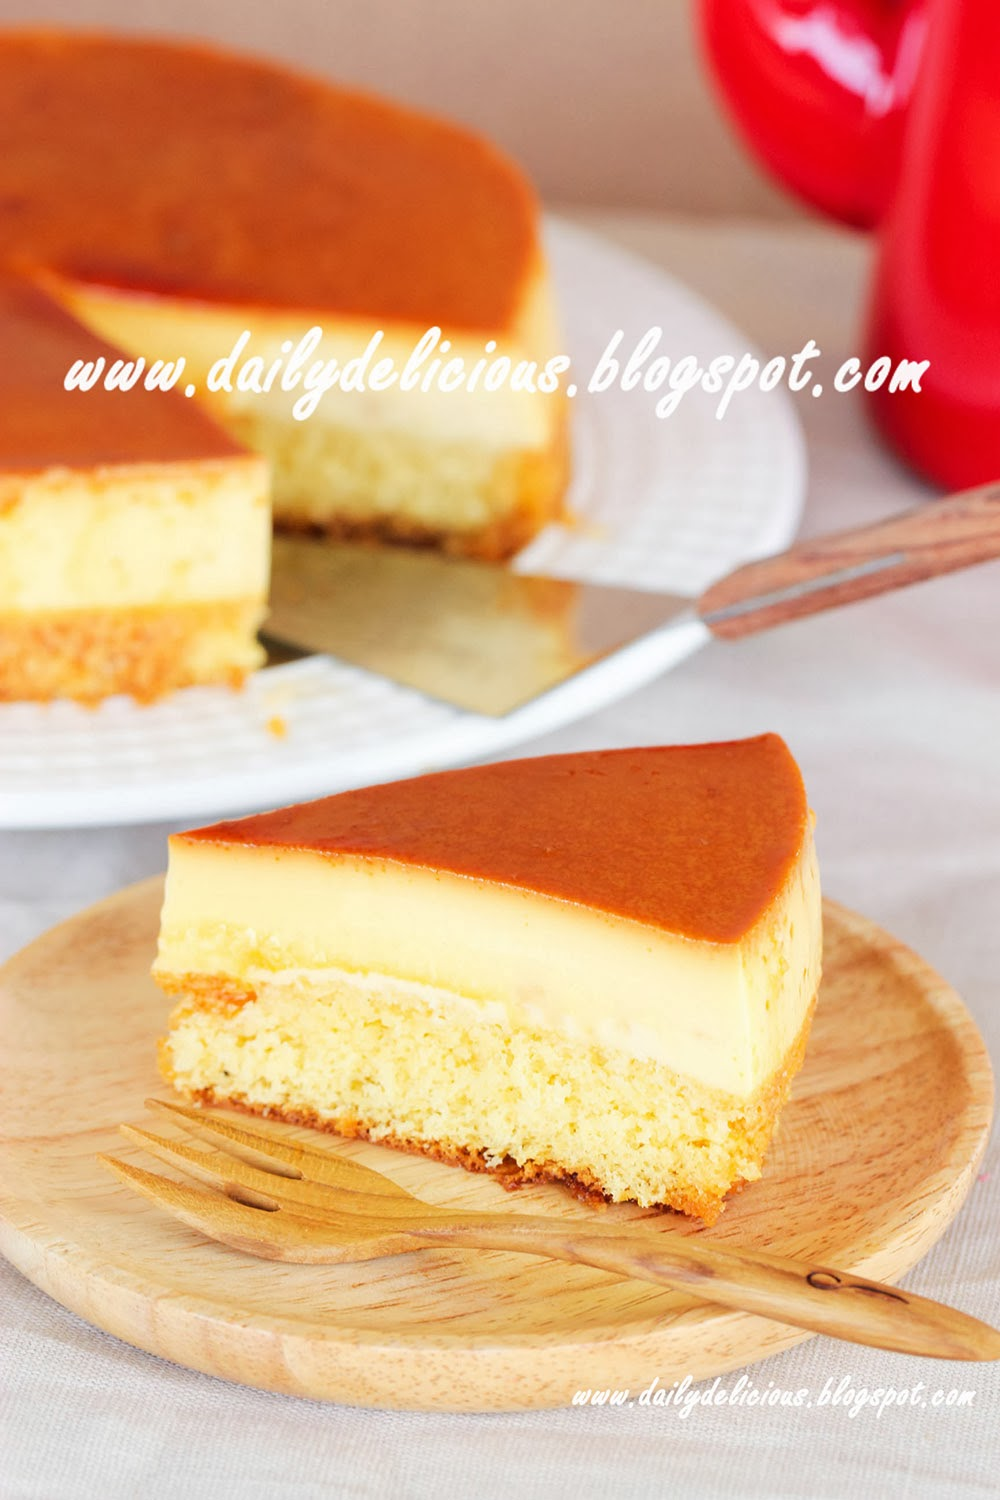 Cake Recipe Without Eggs Or Butter